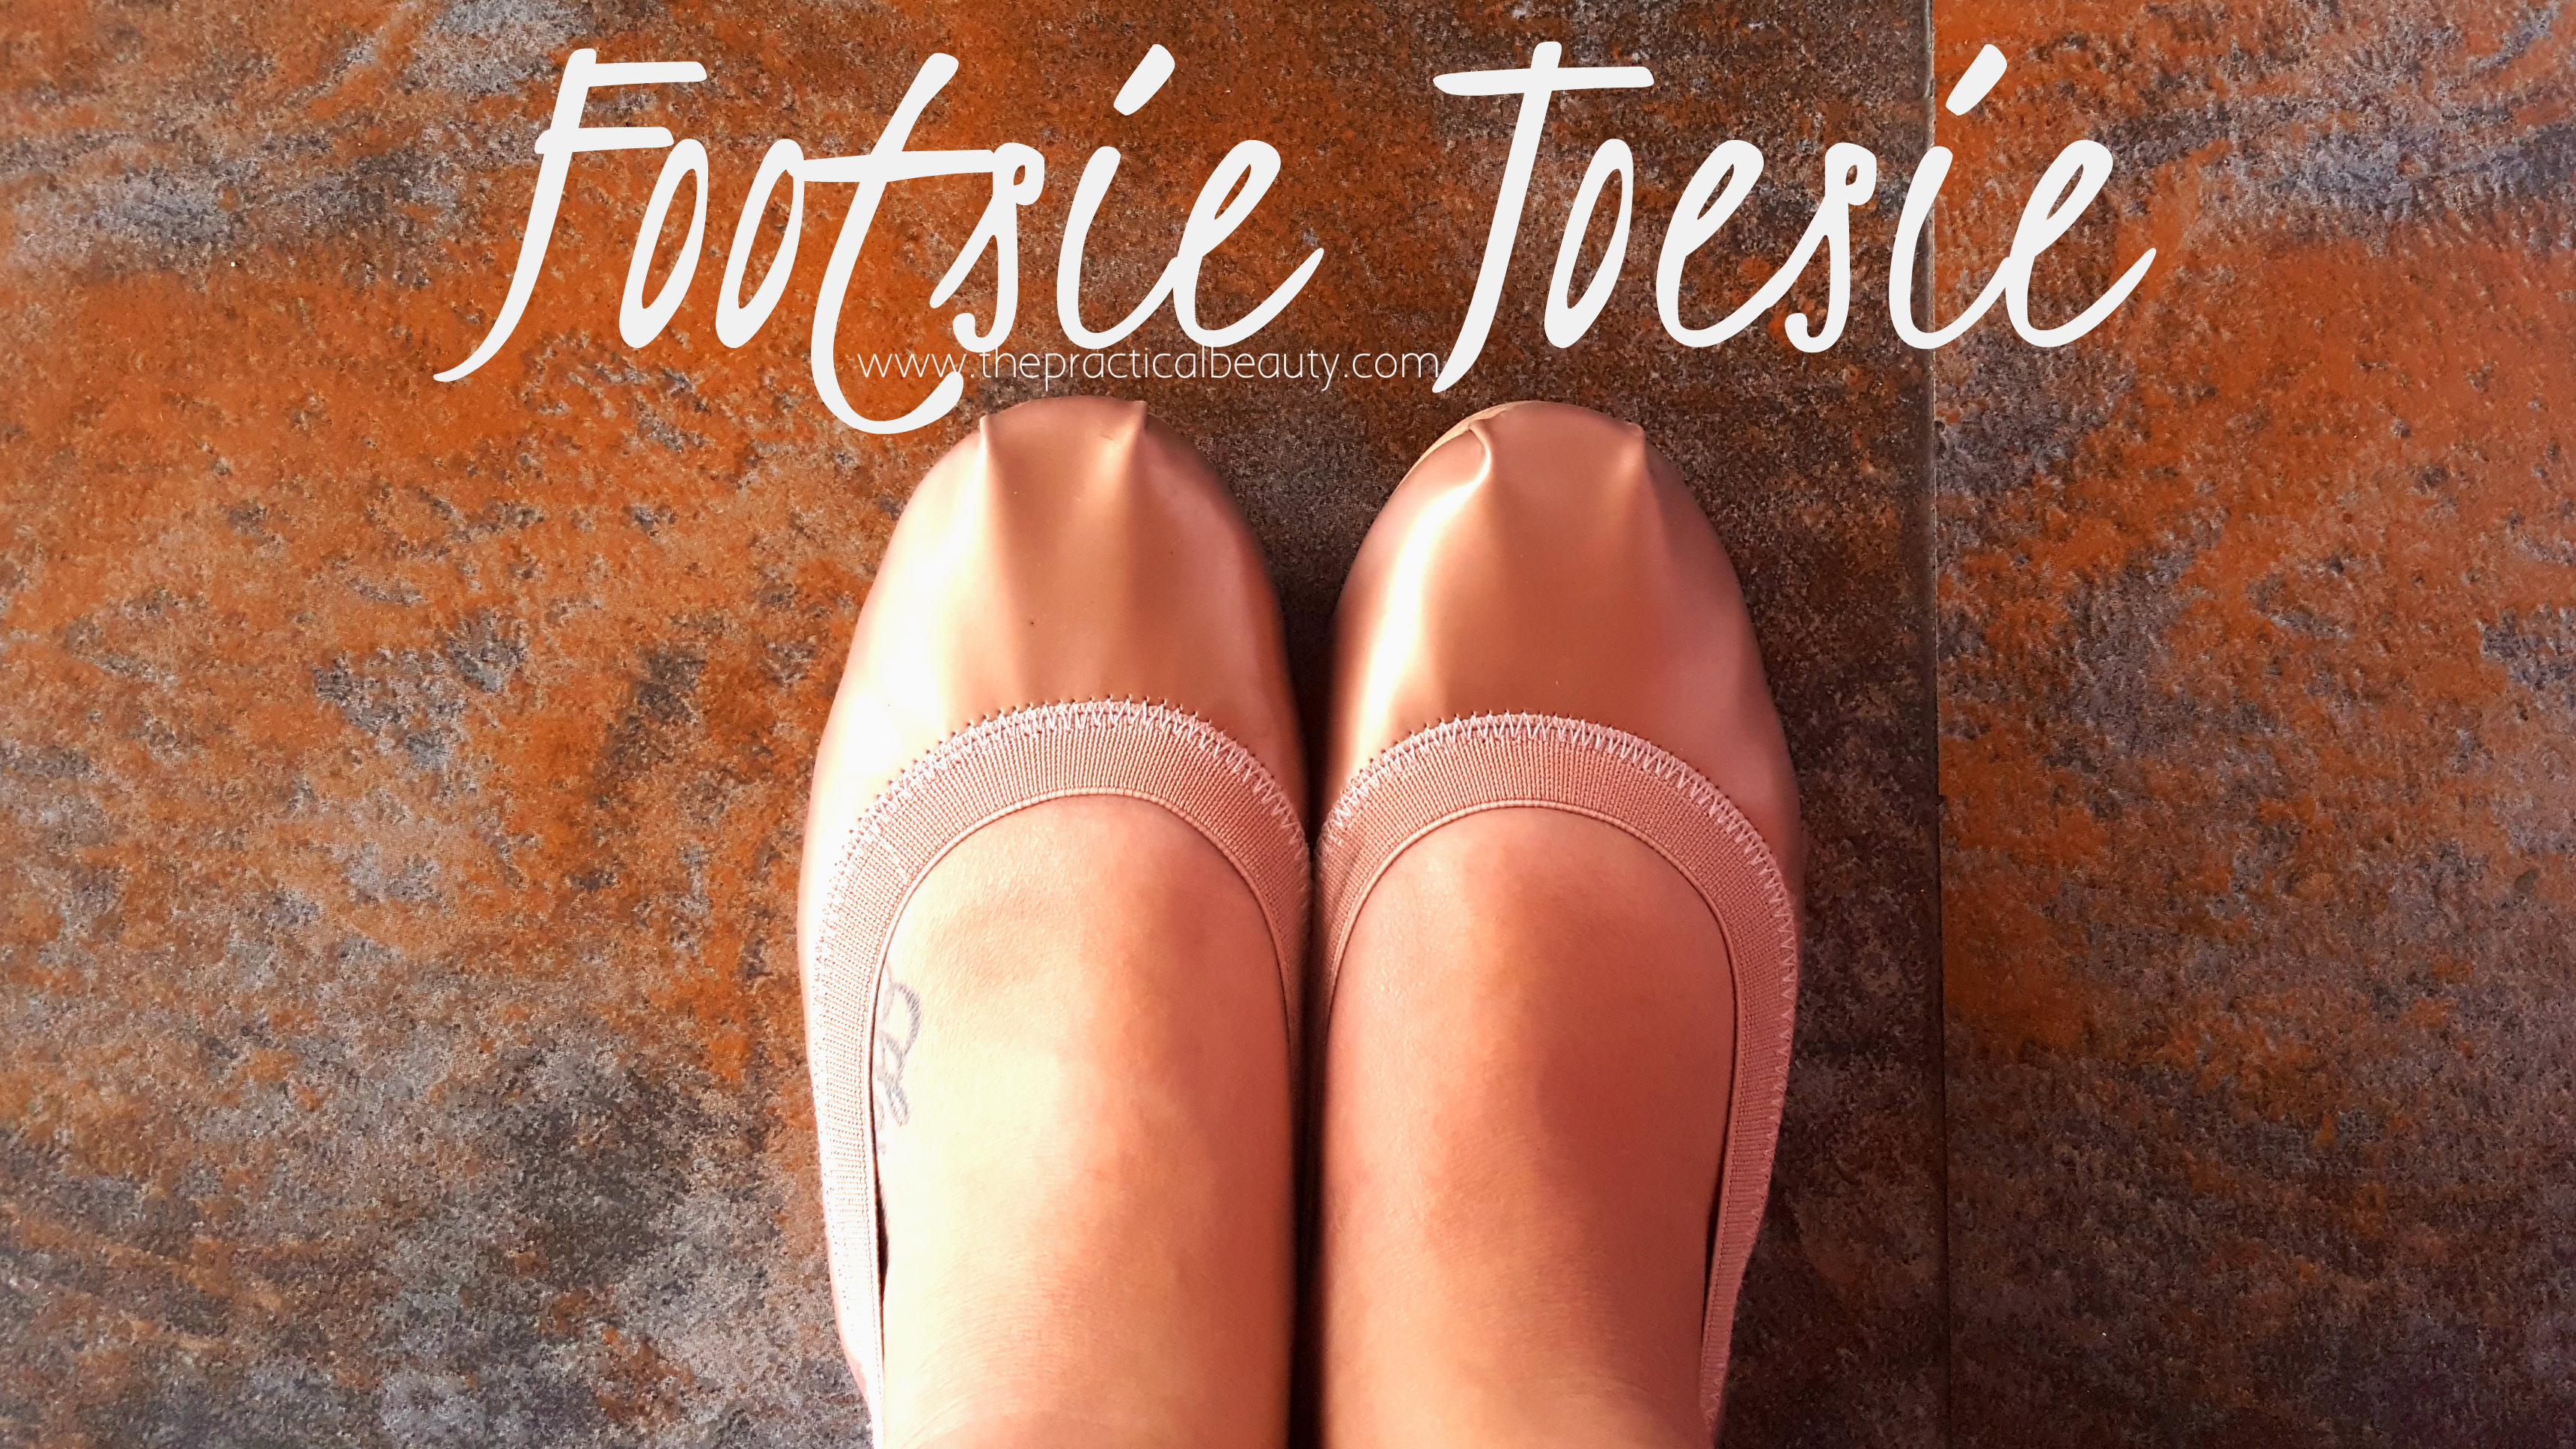 Footsie Toesie Bacolod Review